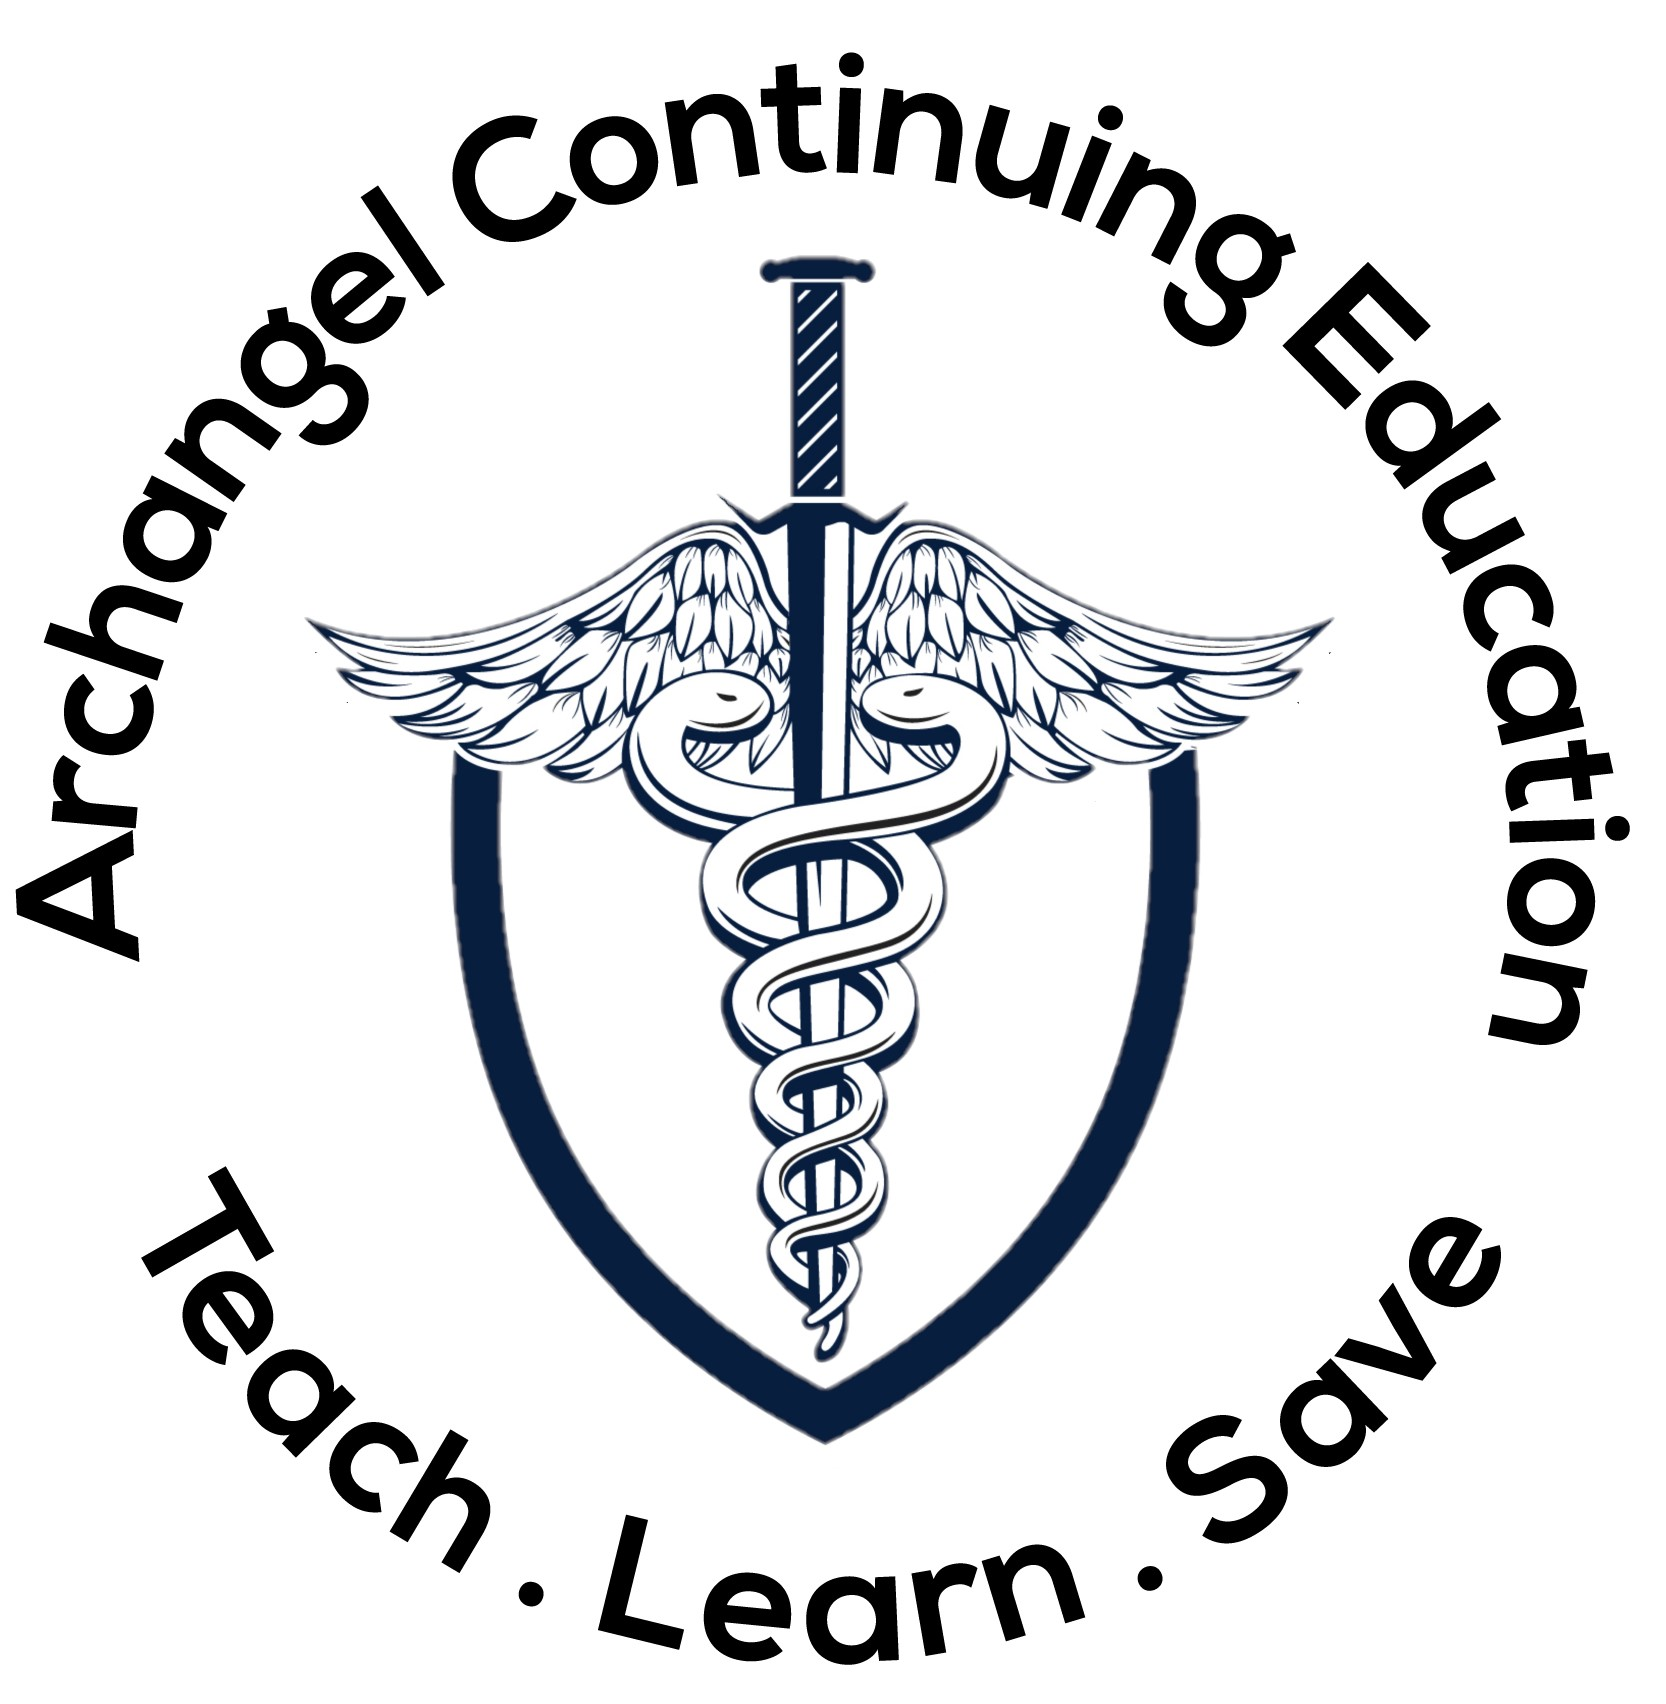 Archangel Continuing Education